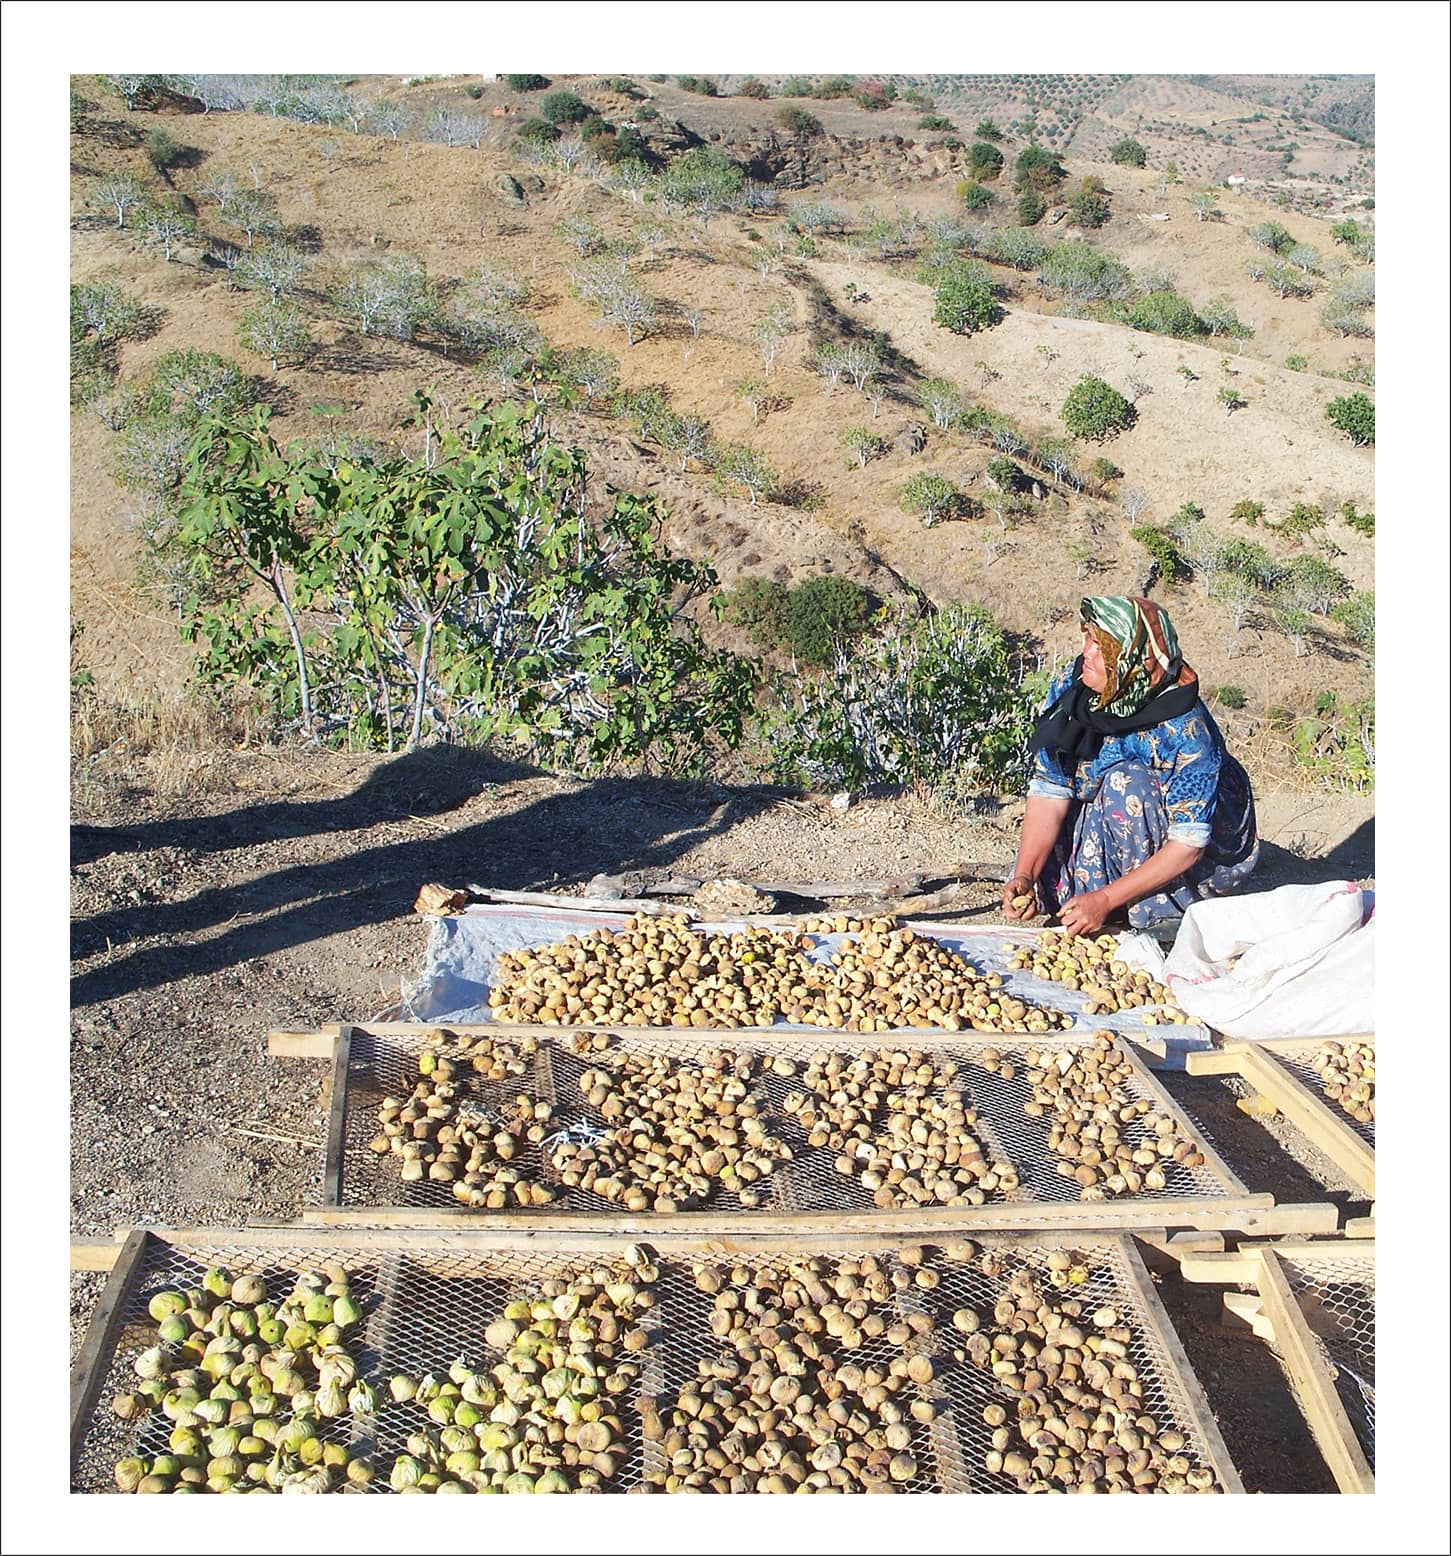 A farmer collects the figs before shaking off the soil